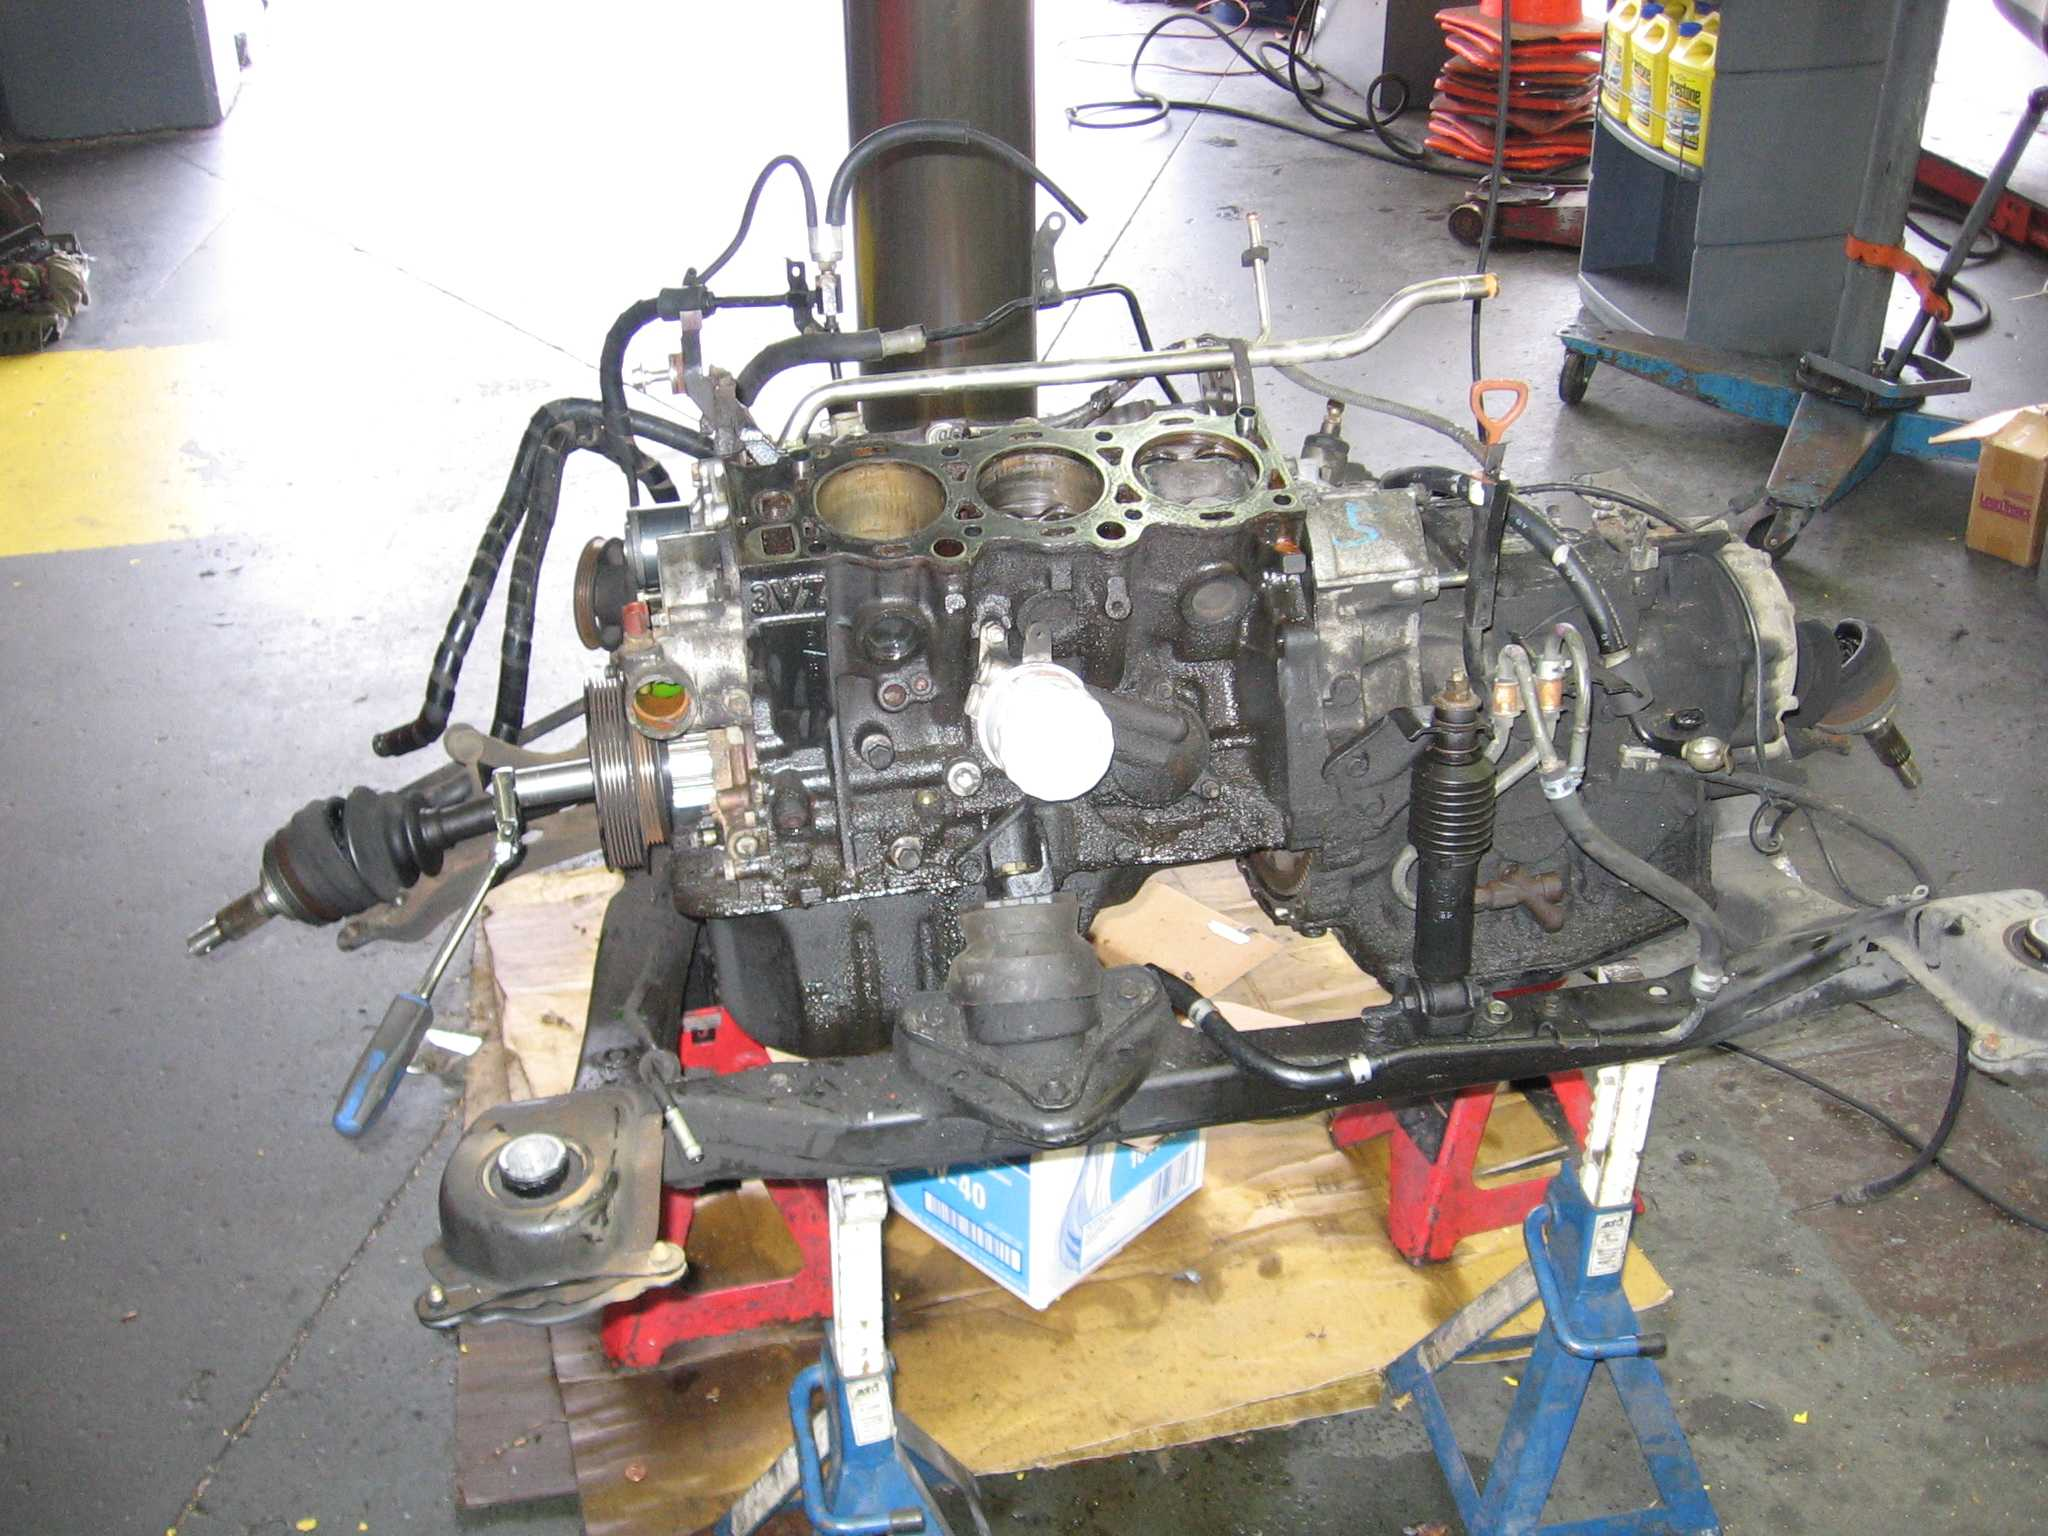 Engine%20and%20Trans%20assembly.jpg?dl=0